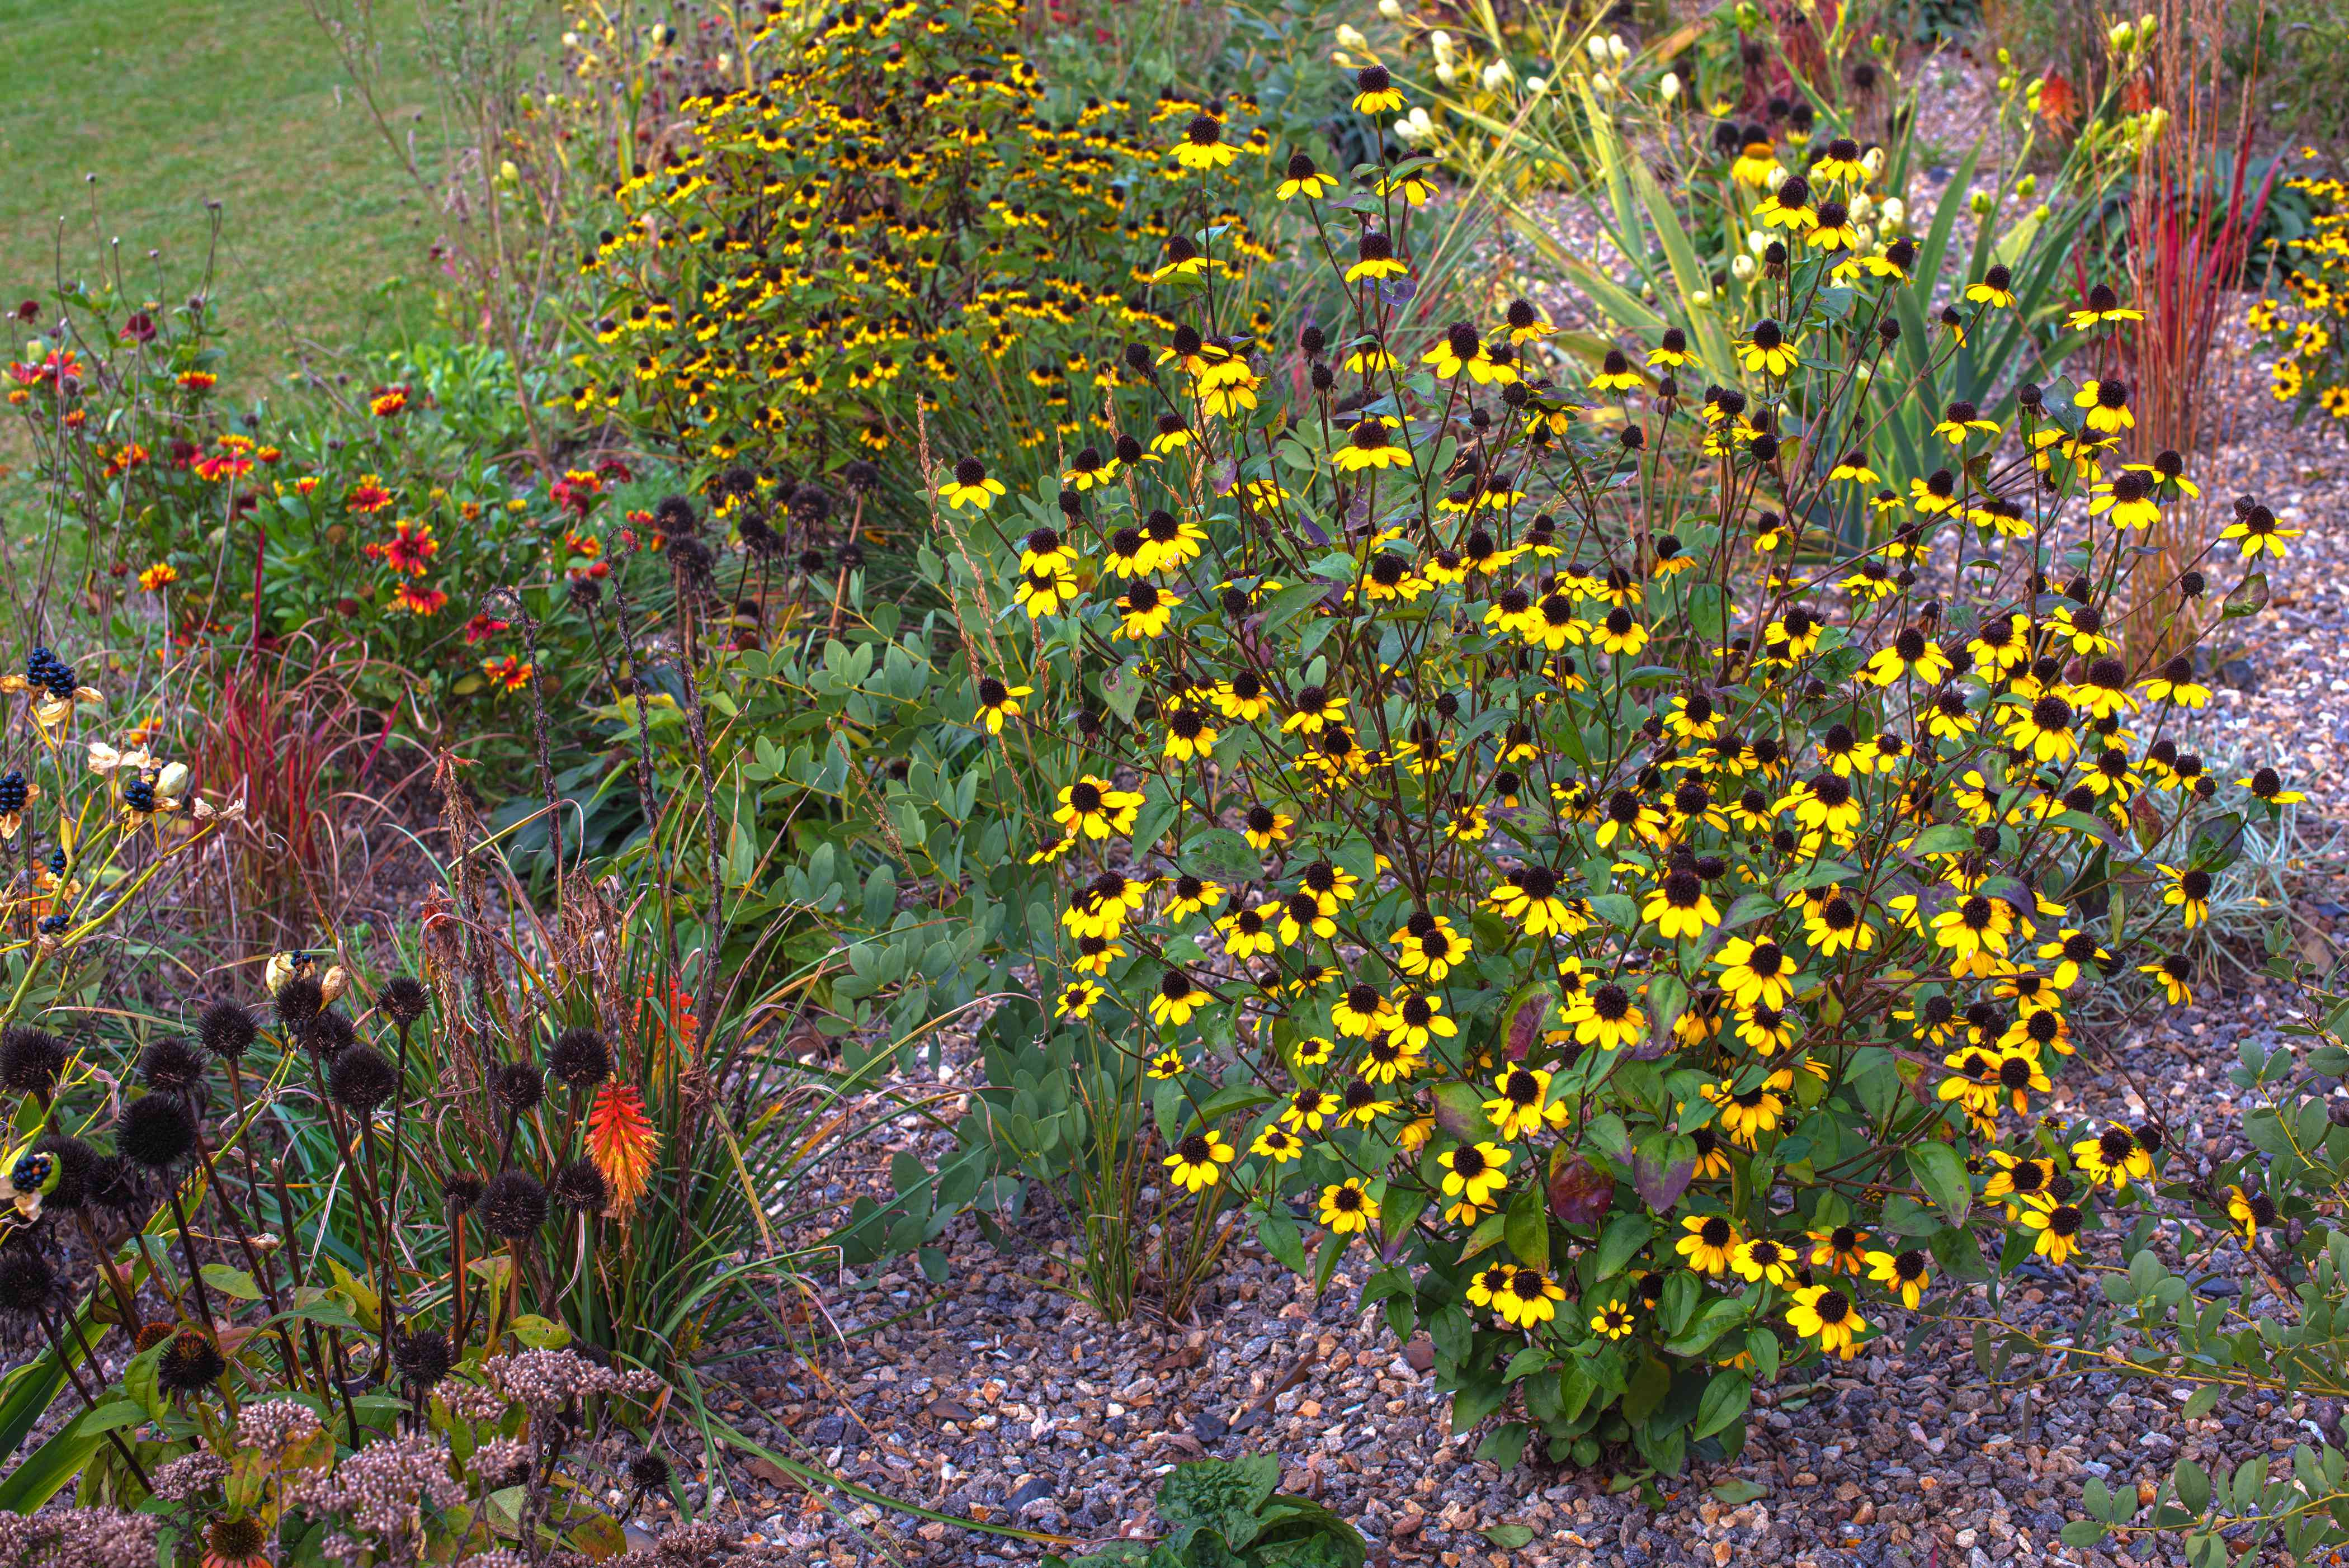 Brown-eyed susan wildflowers on tall thin stems and small yellow flowers in flower garden